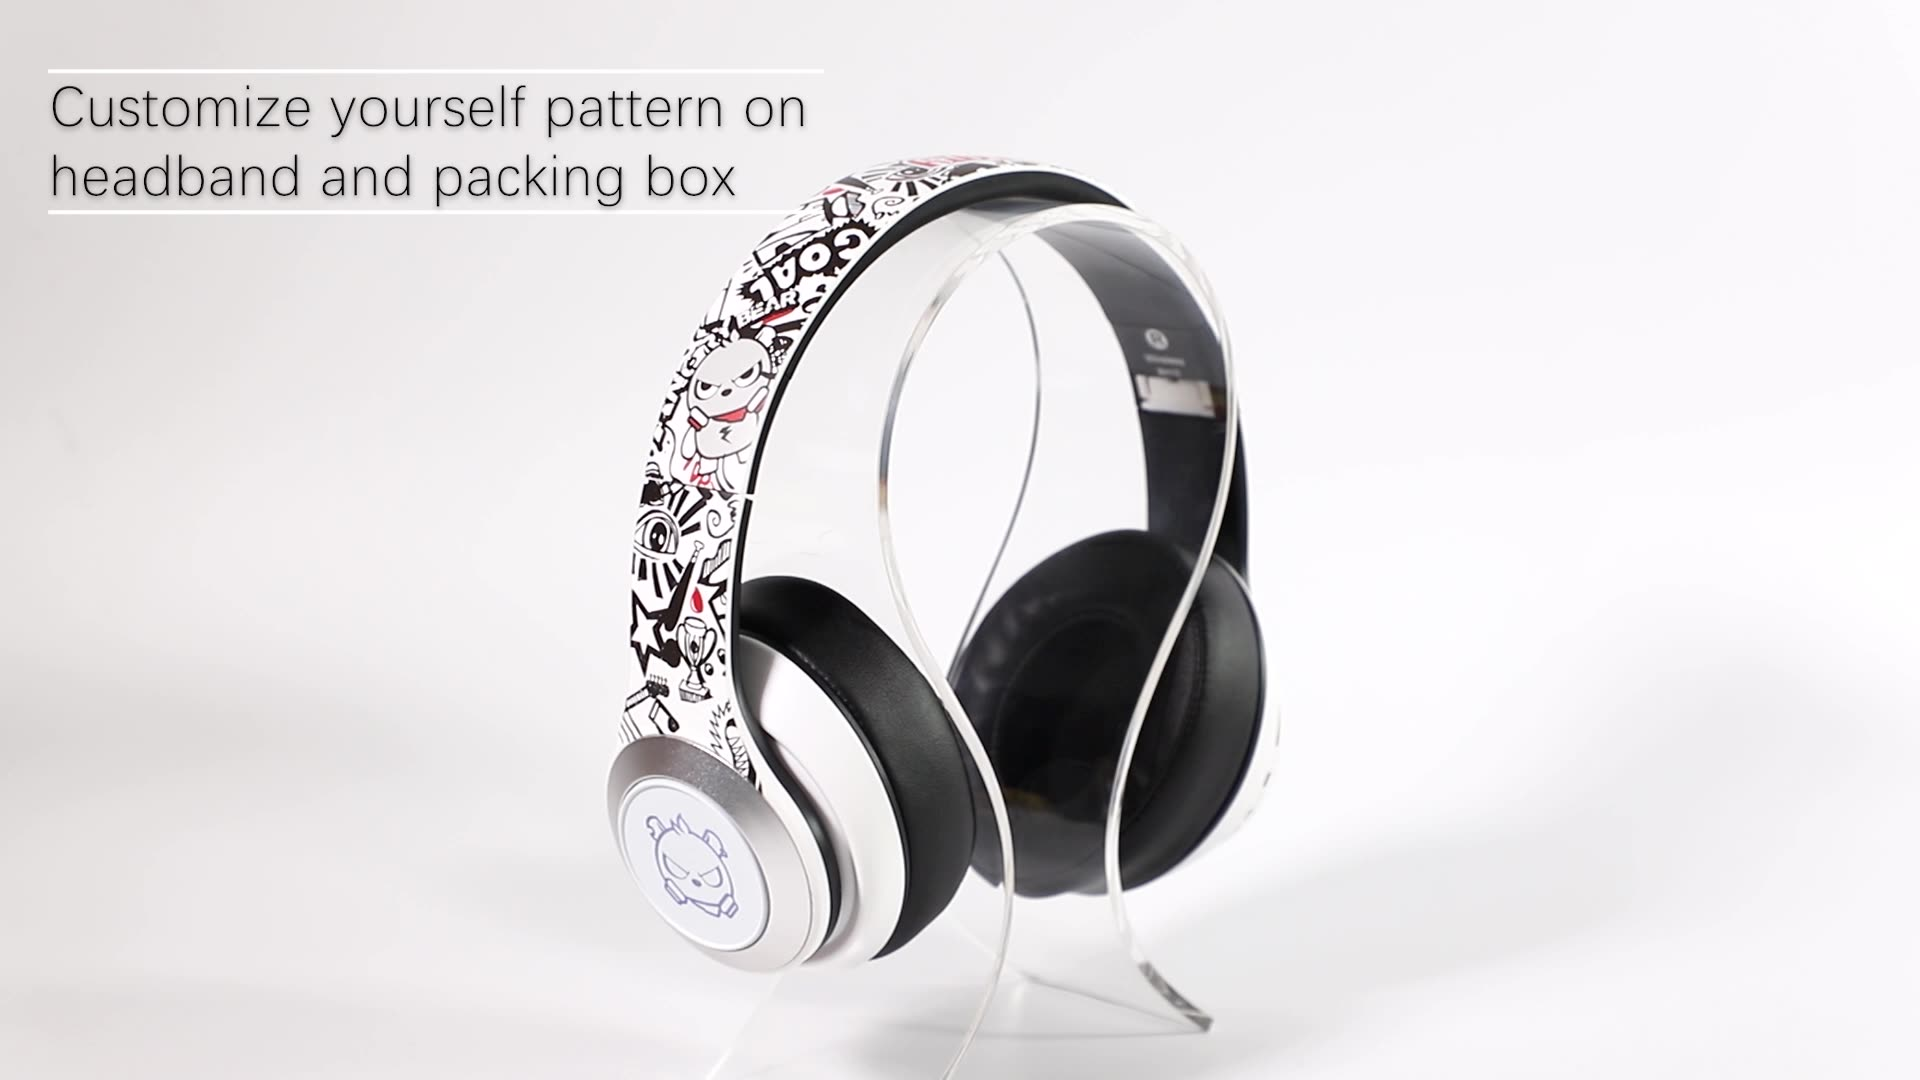 Customize Logo led light gaming headset Wireless Bluetooth Headphones with detachable microphone cables